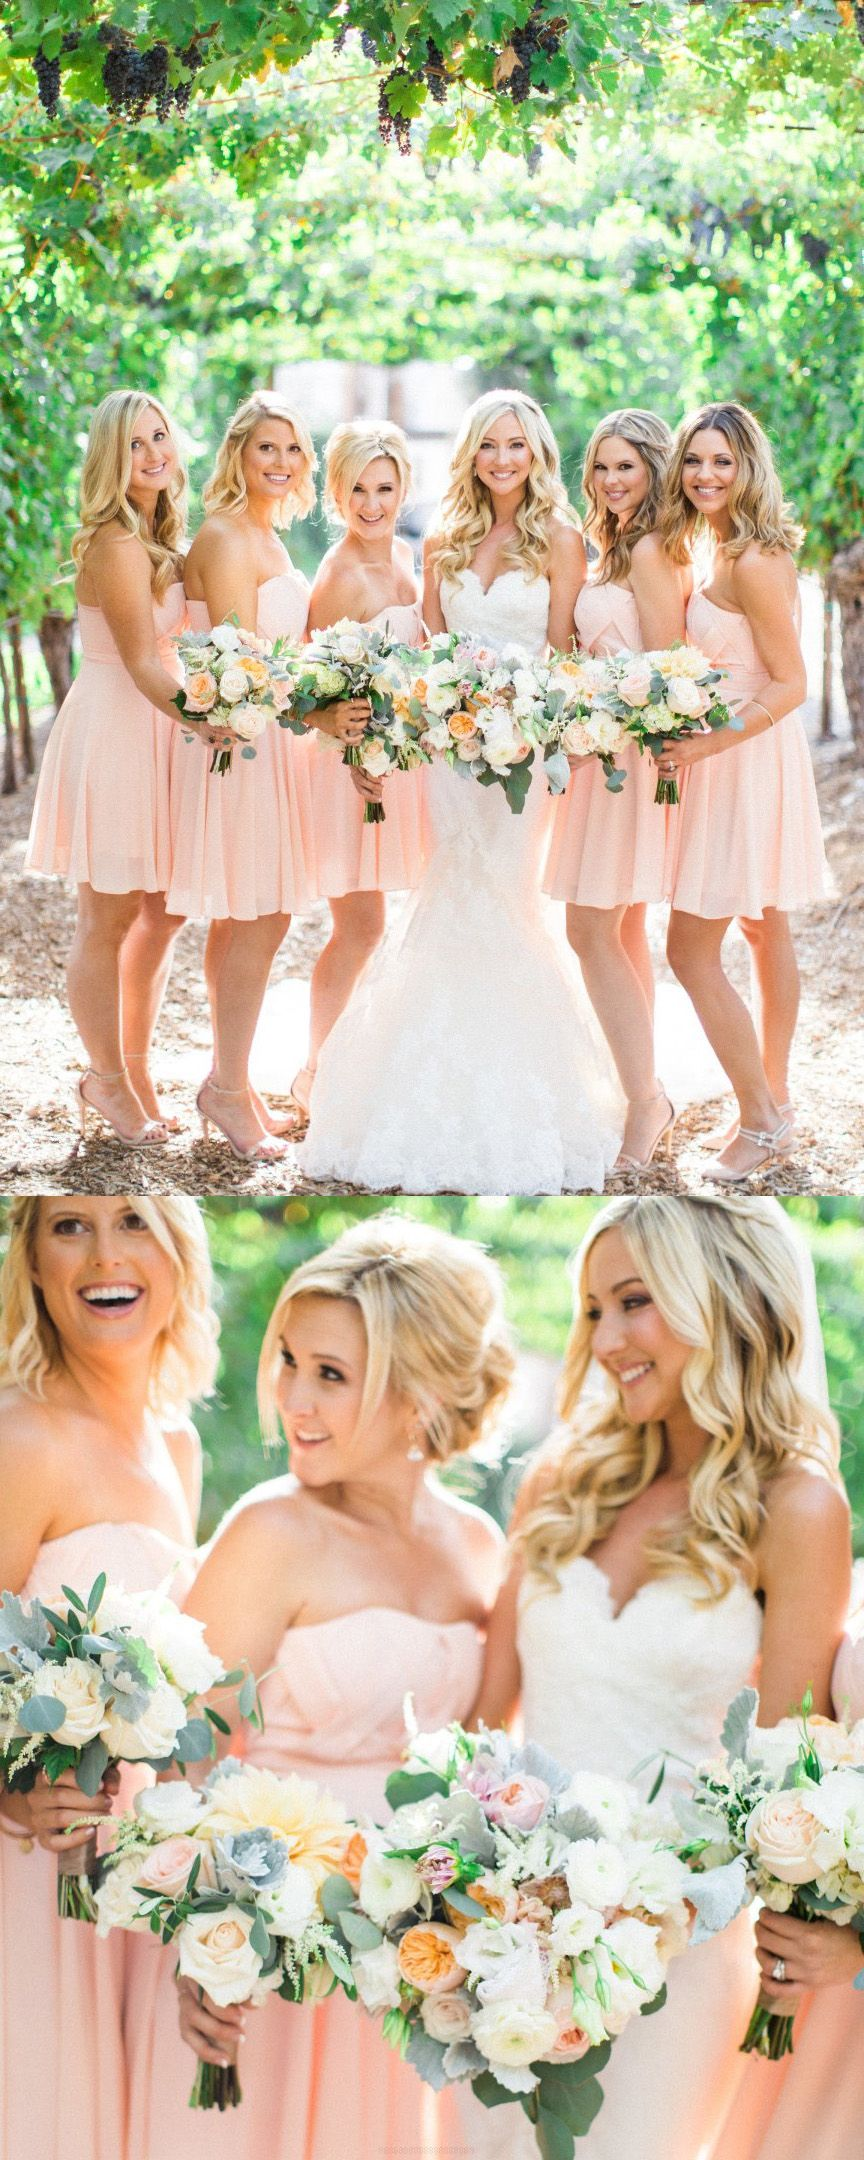 Pink bridesmaid dresses short bridesmaid dresses short pink bridesmaid dresses cheap cheap bridesmaid dresses online bridesmaid dresses bridesmaid dresses online ombrellifo Choice Image